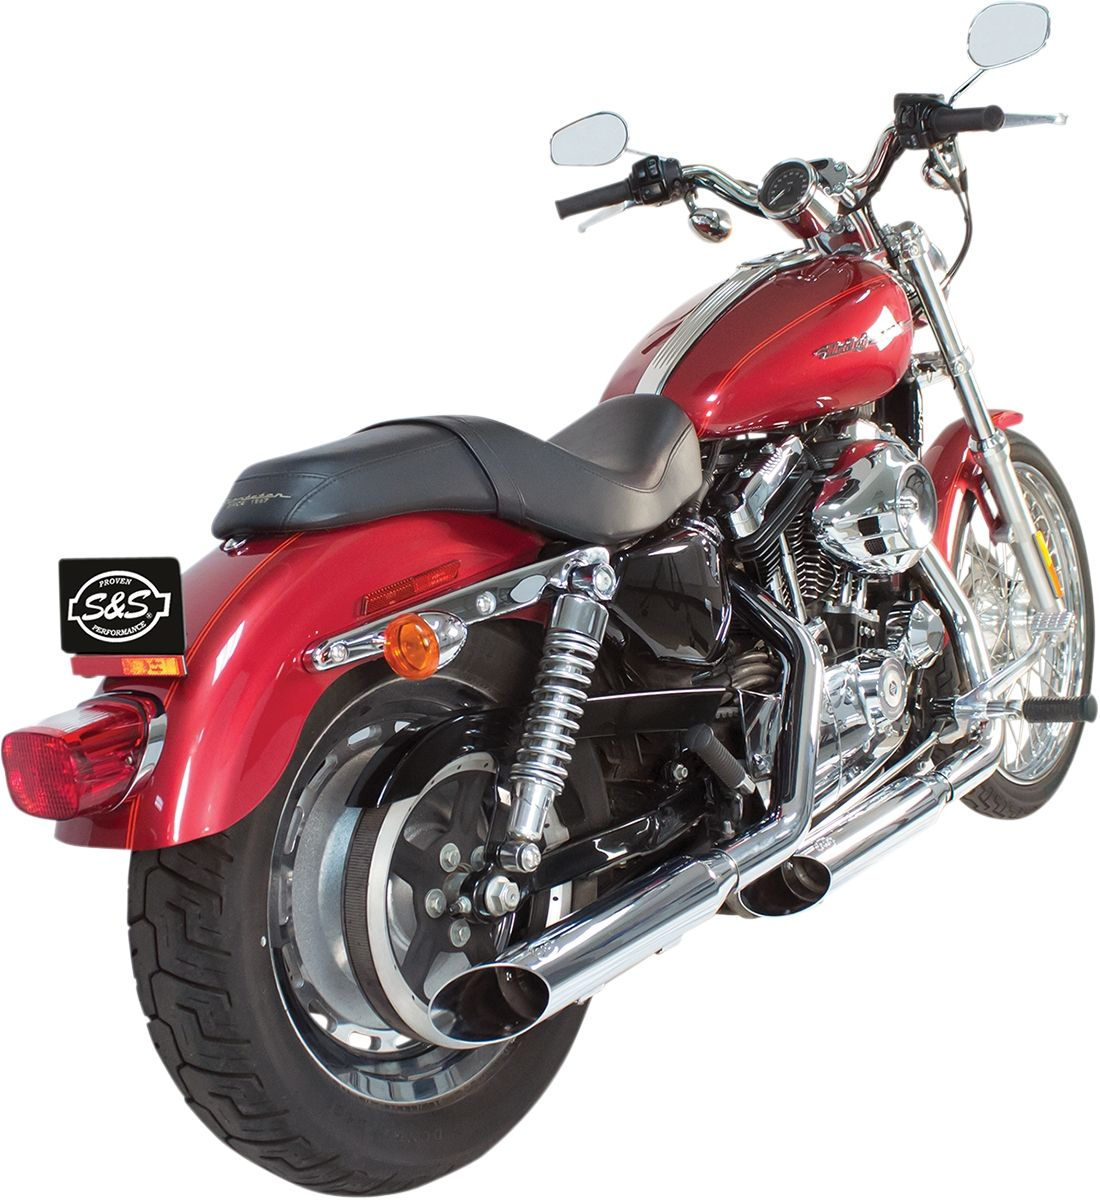 【S&S CYCLE】排氣管尾段/ SLANT OUT 2004-13XL 【MUFFLERS SL/OUT 04-13XL [1801-0664]】 - 「Webike-摩托百貨」